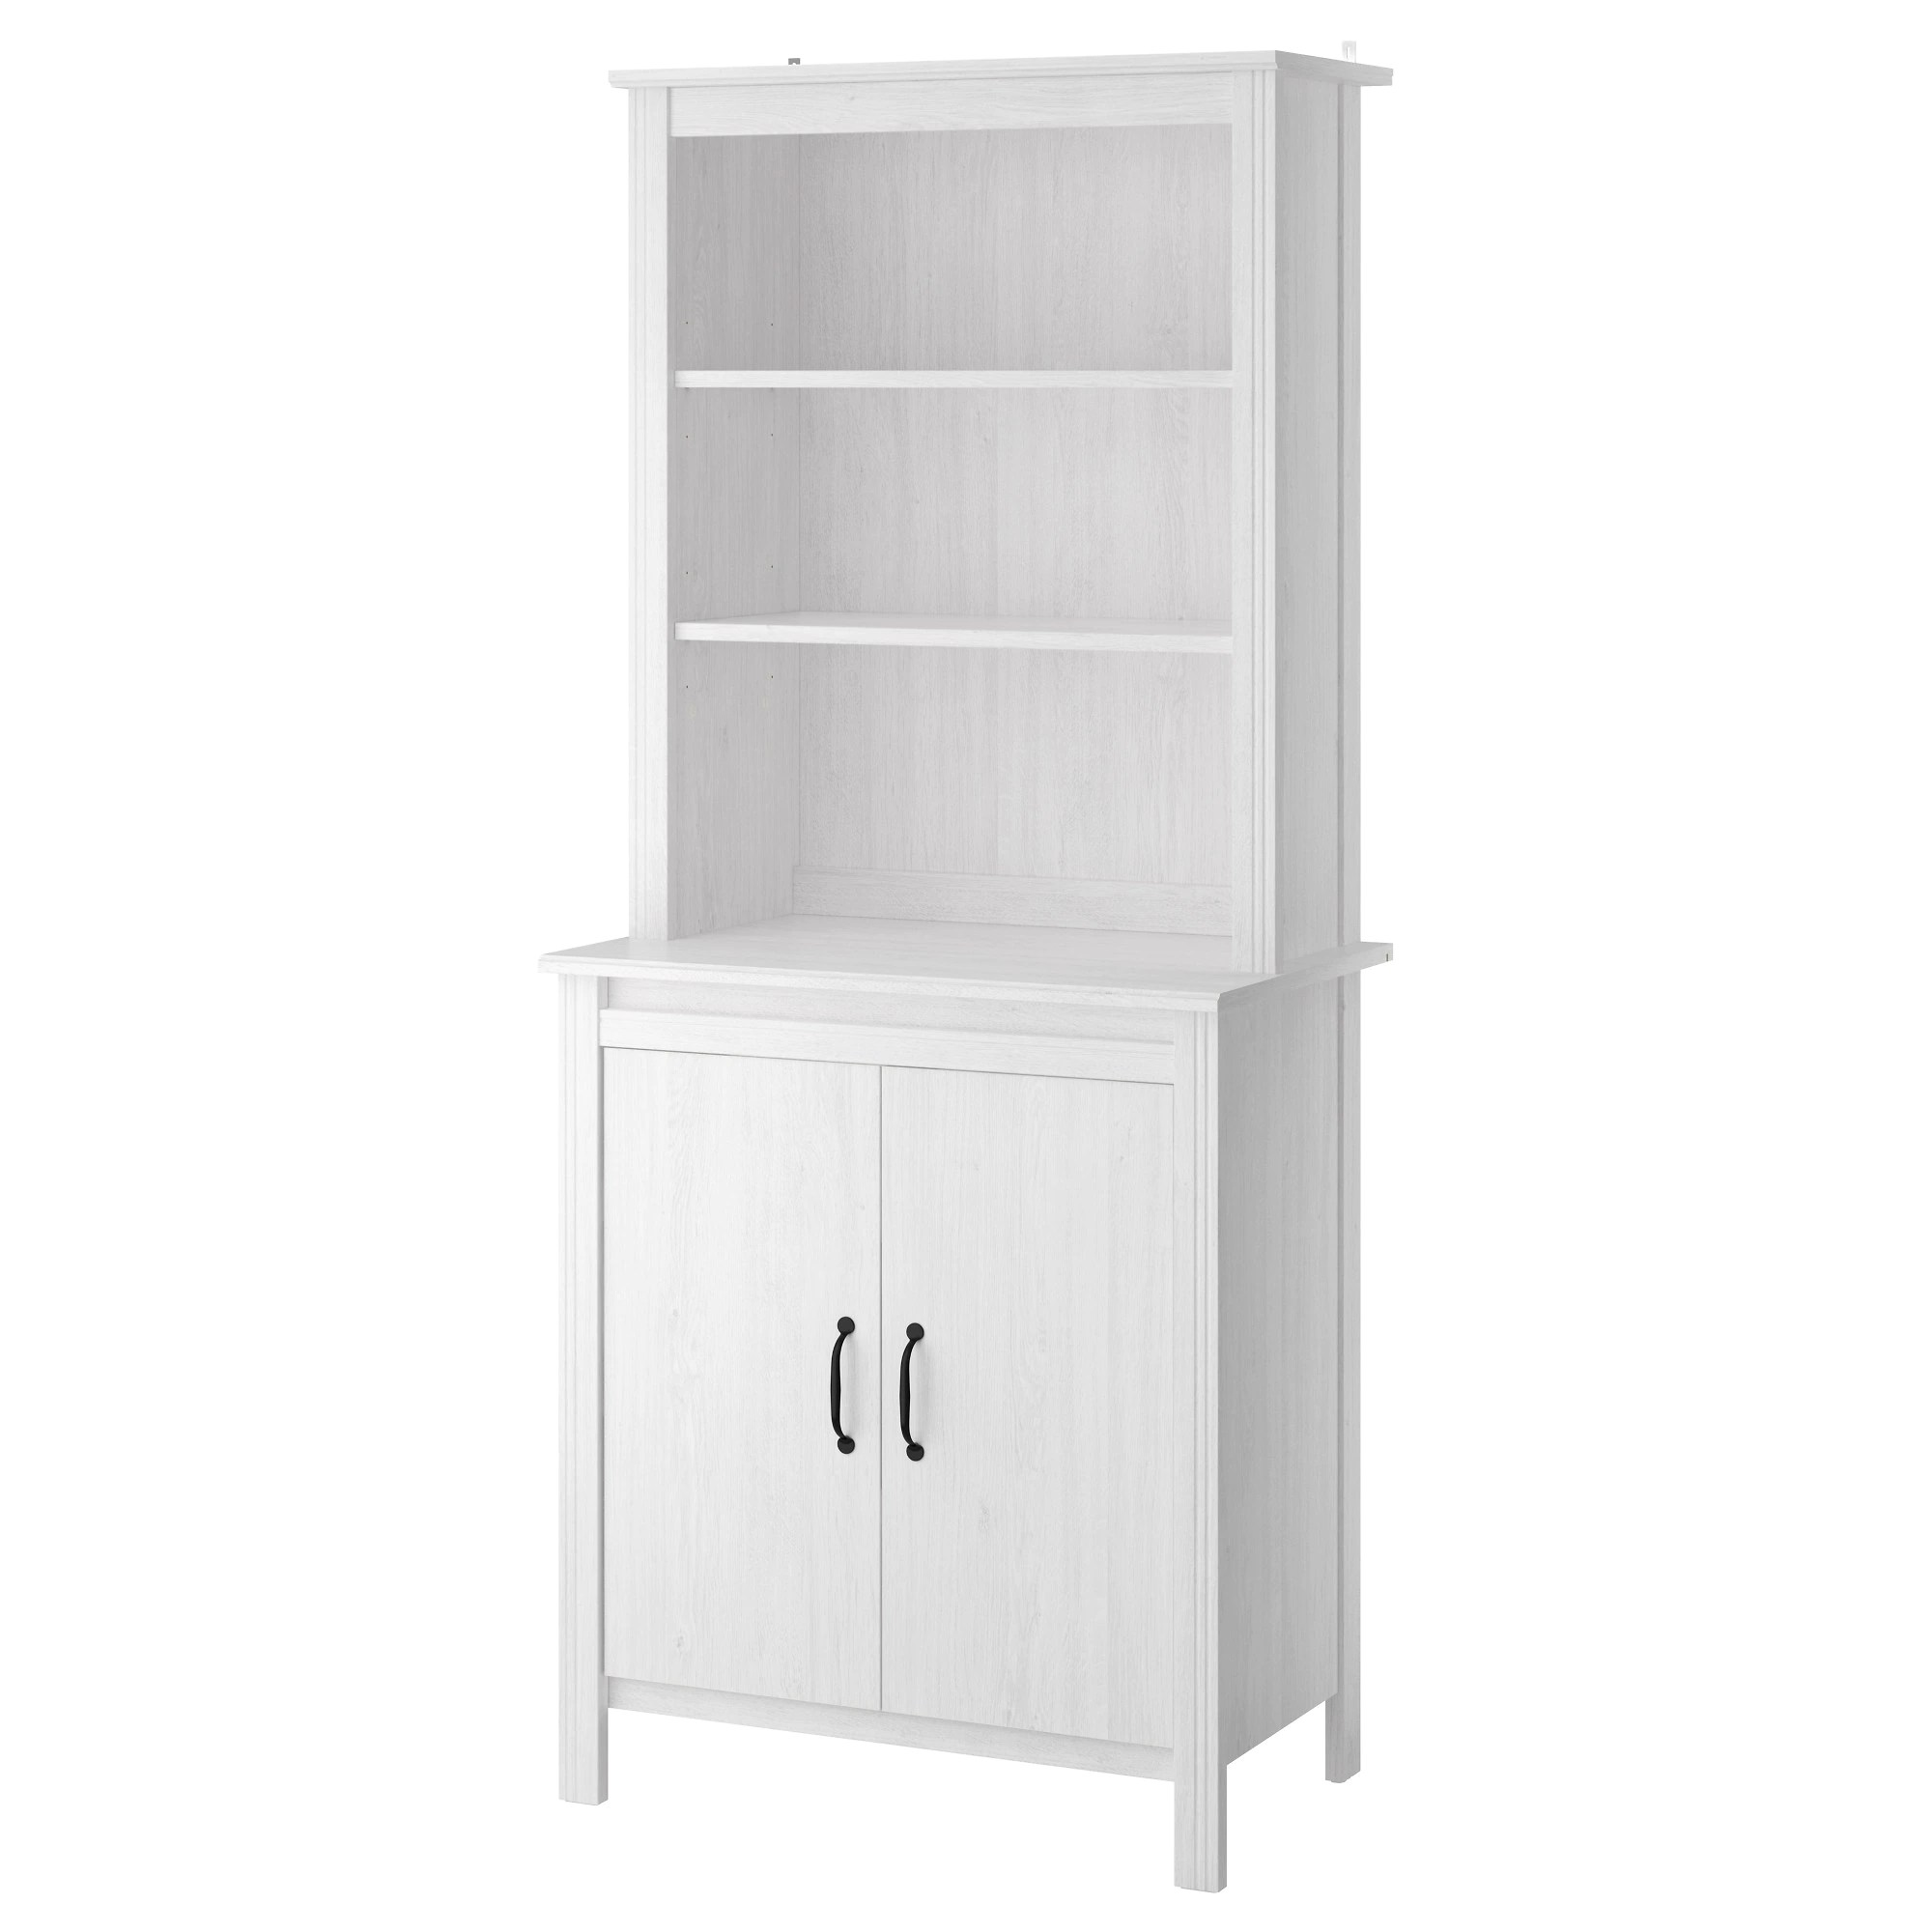 Ikea Storage Cabinets Brusali High Cabinet With Doors White